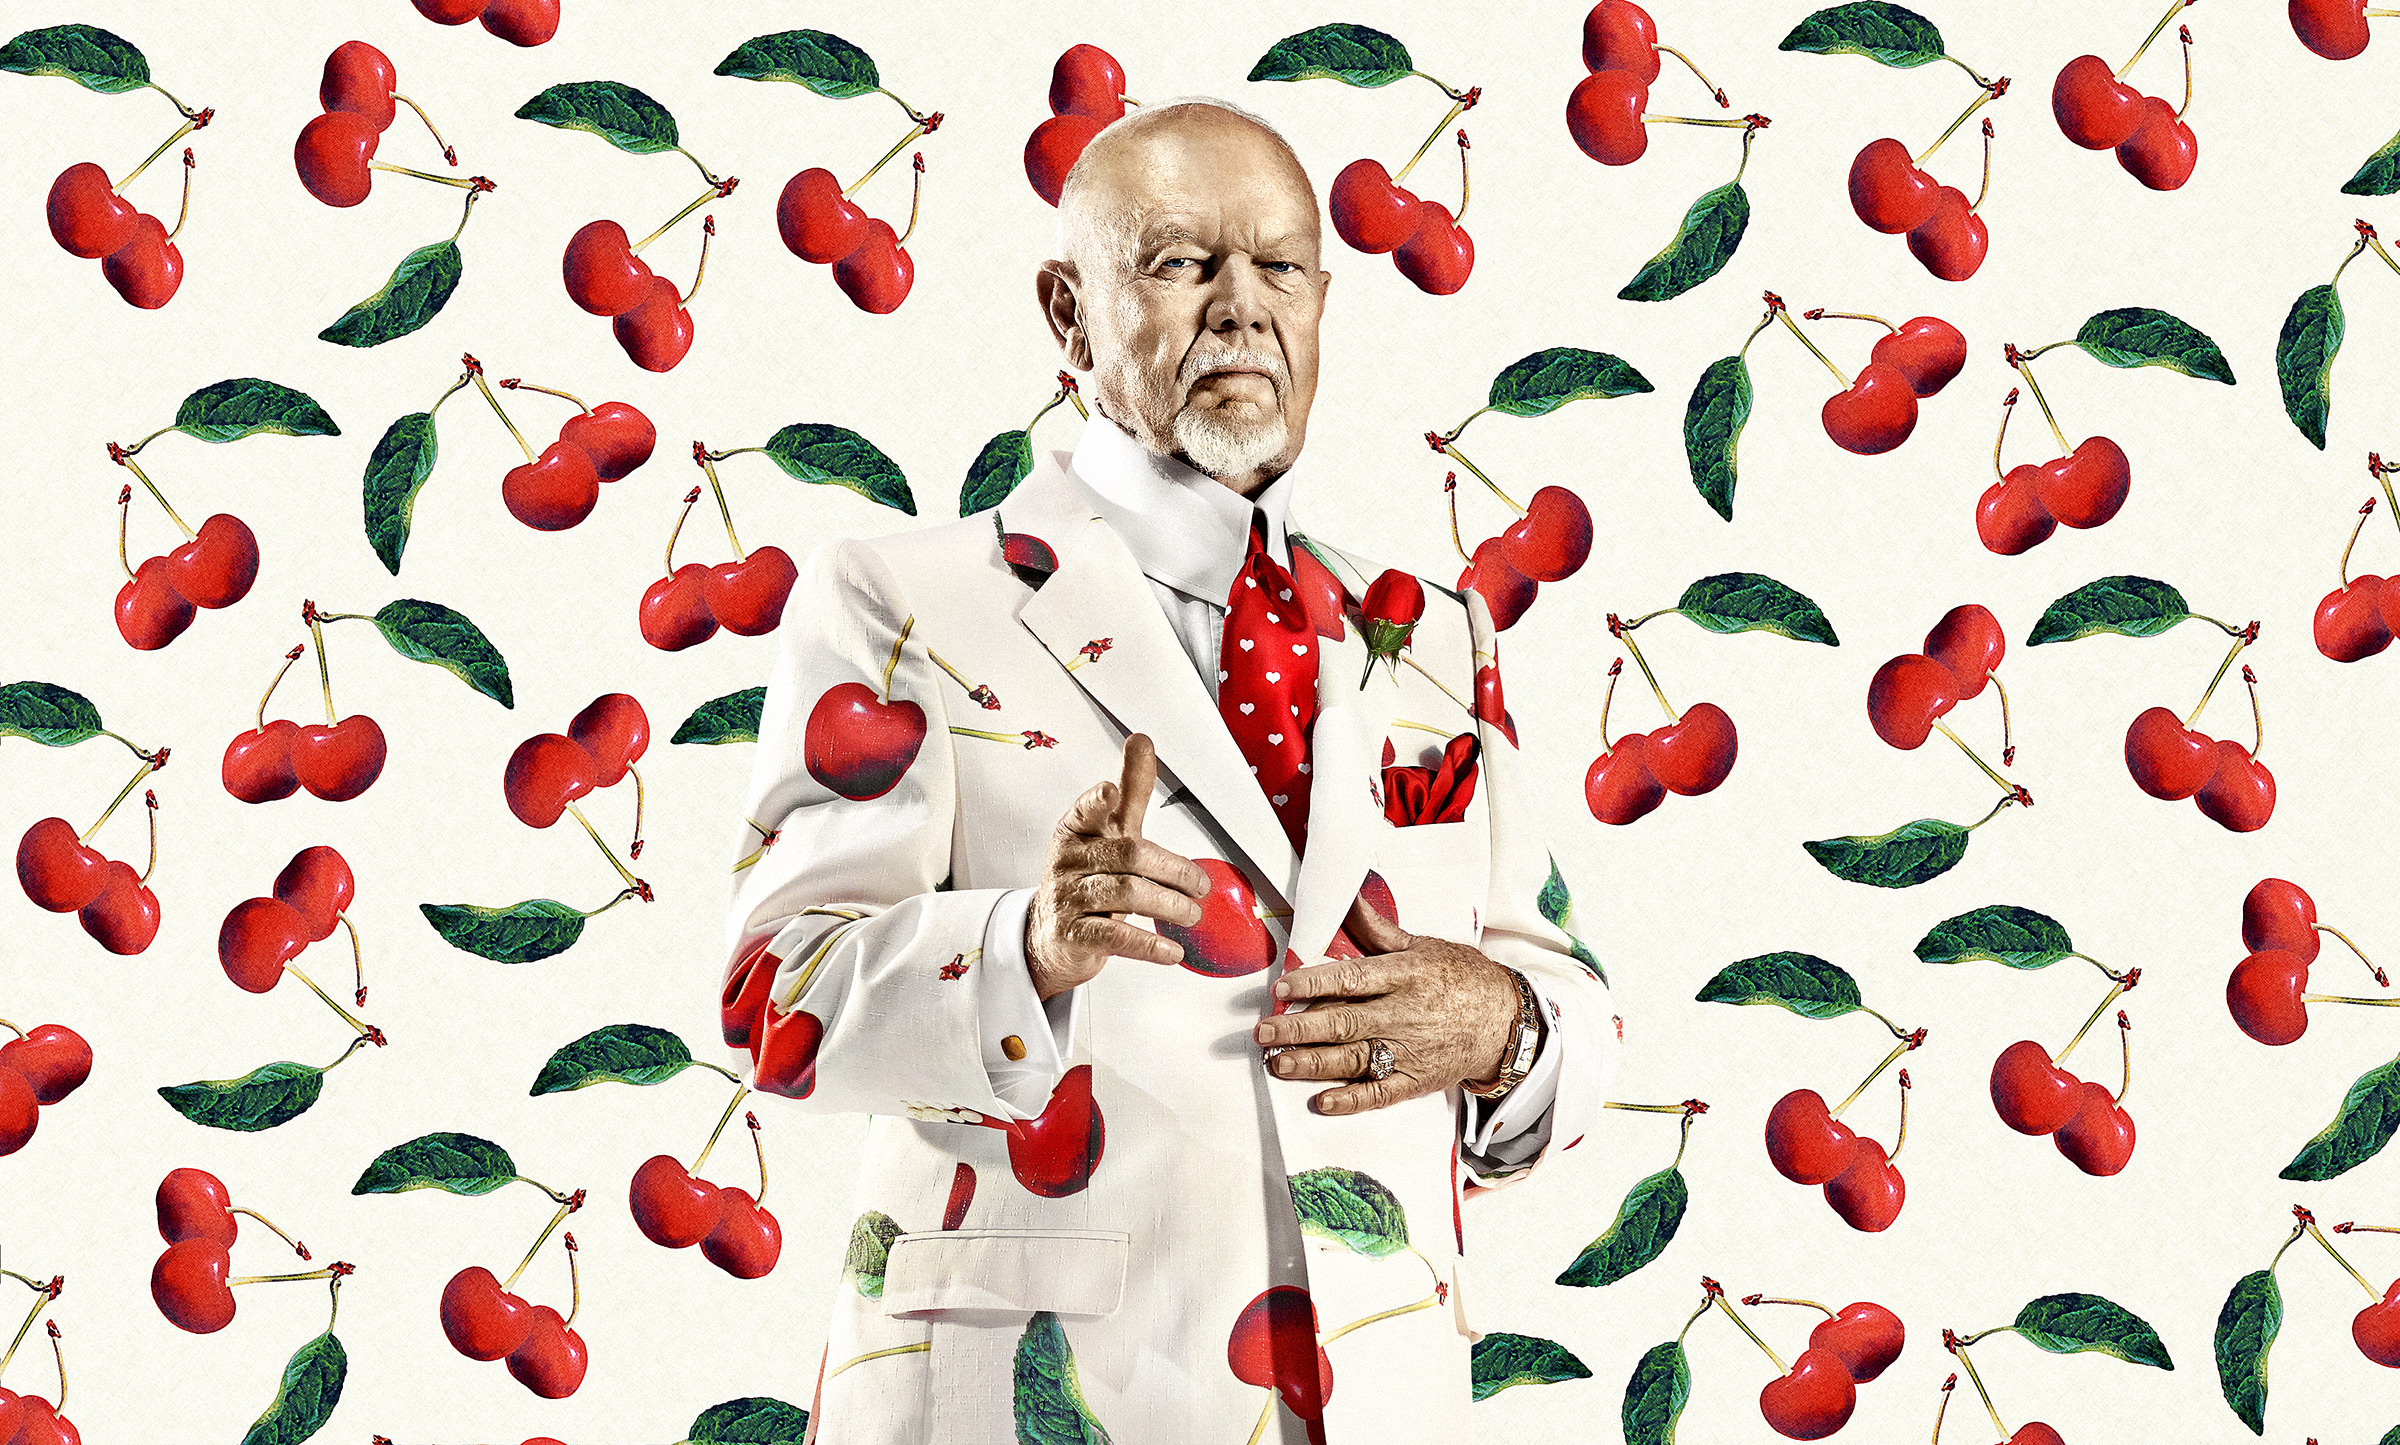 Don Cherry in a white suit with cherries